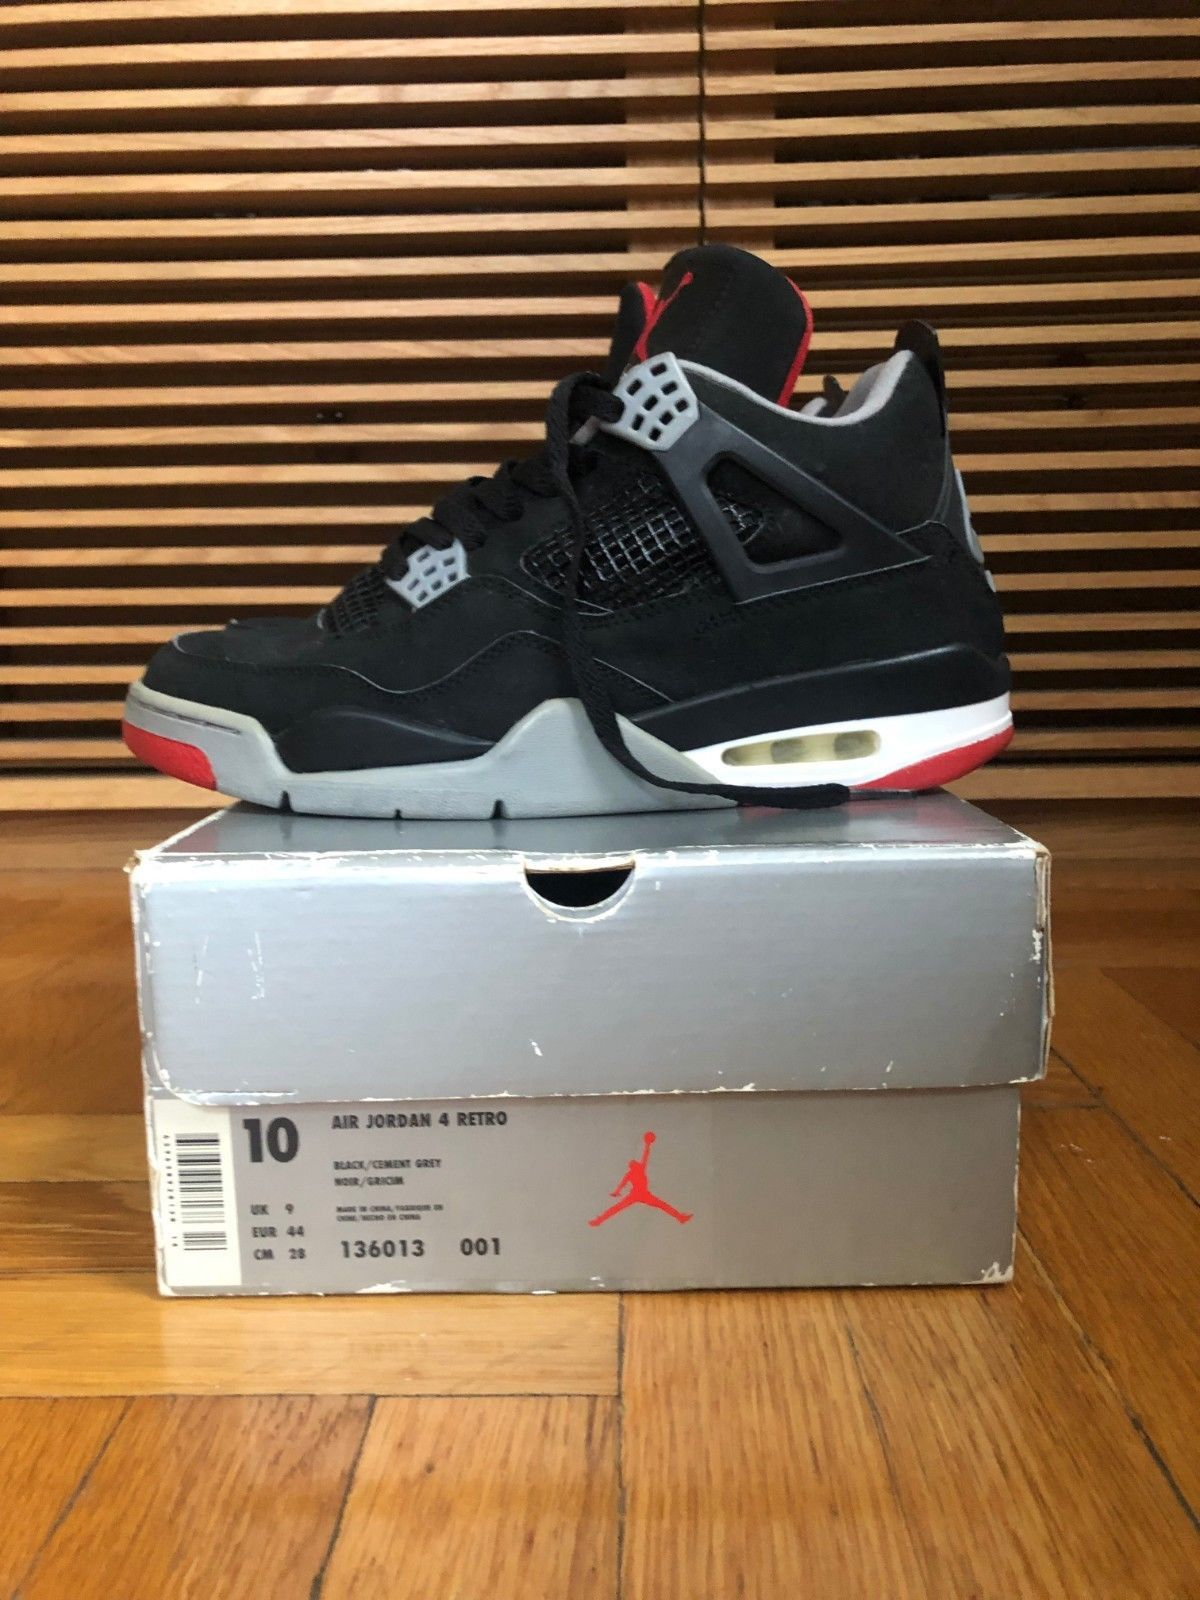 b7c0f4157d4 Details about AIR JORDAN BRED 4 IV 1999 RETRO NEW SIZE 10 BLACK ...